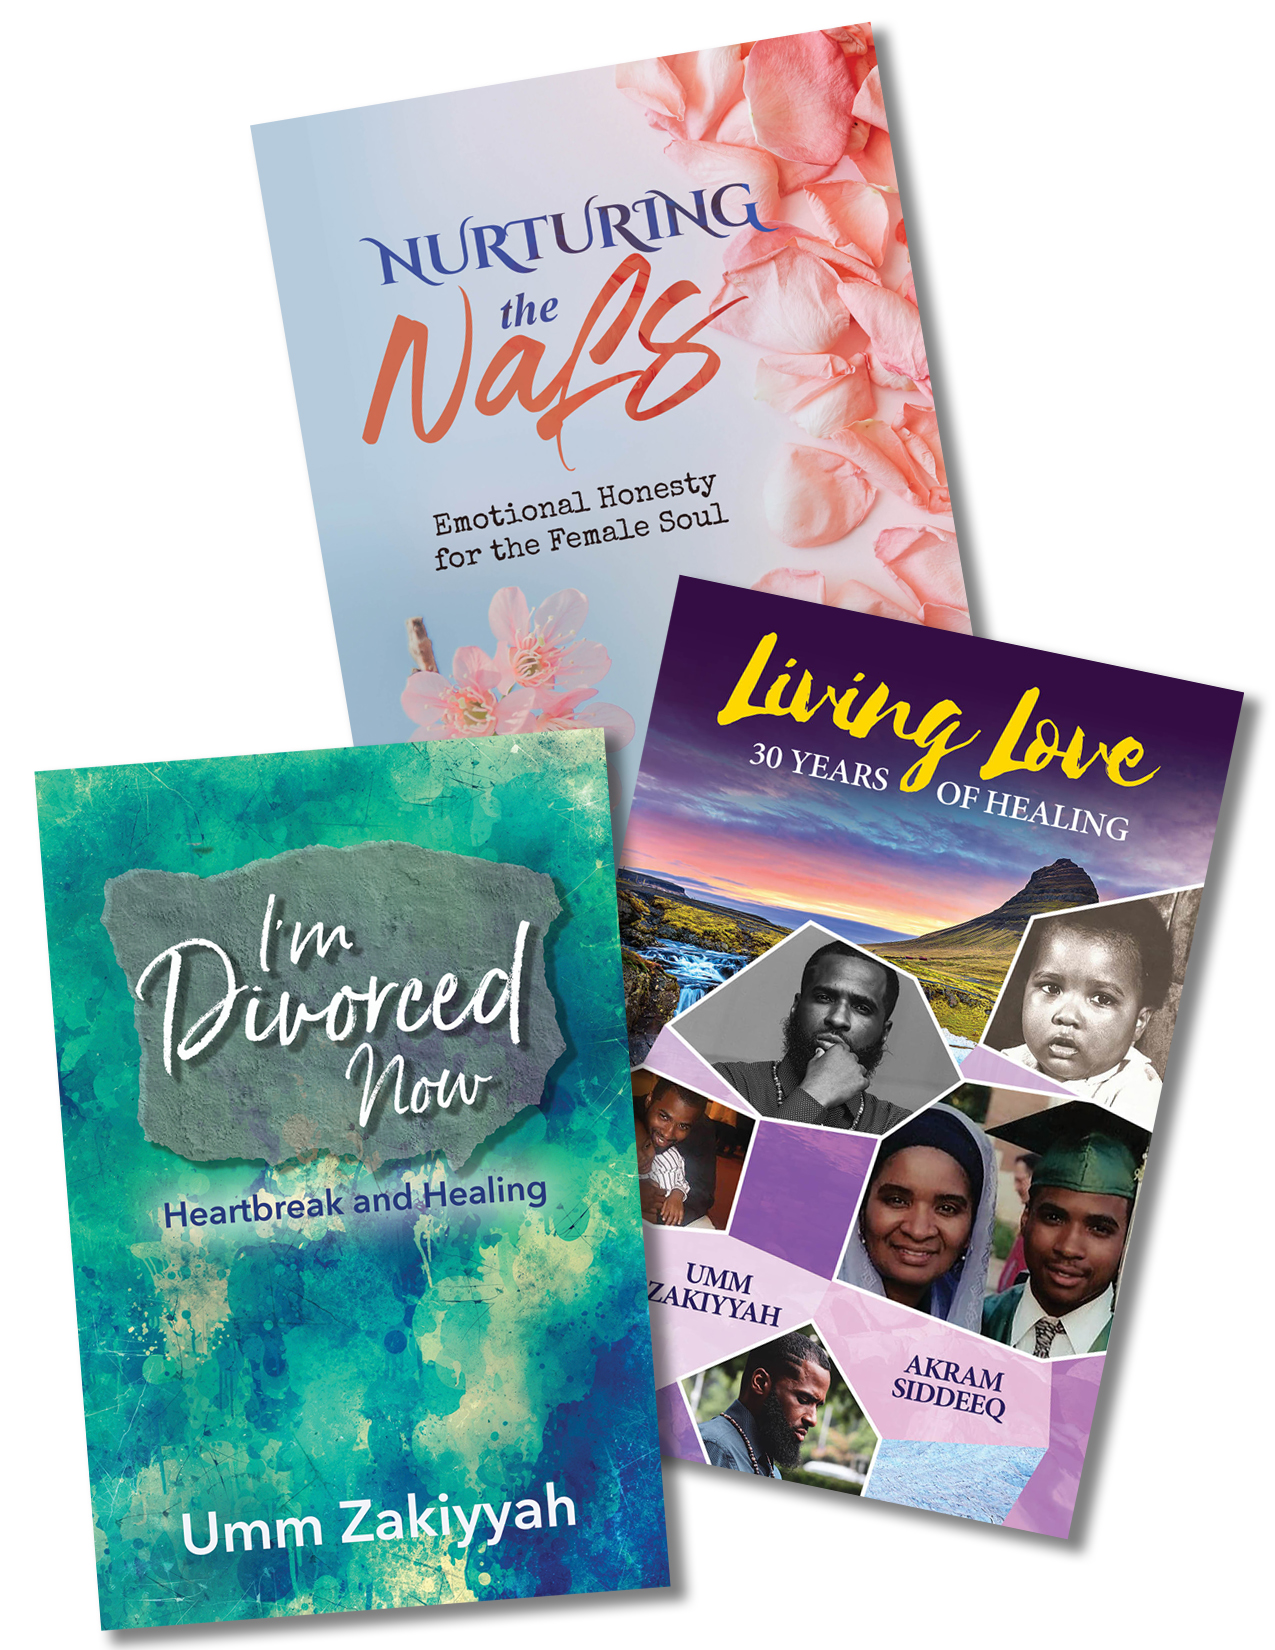 Collage of three UZ book covers: Nurturing the Nafs, Living Love, and I'm Divorced Now